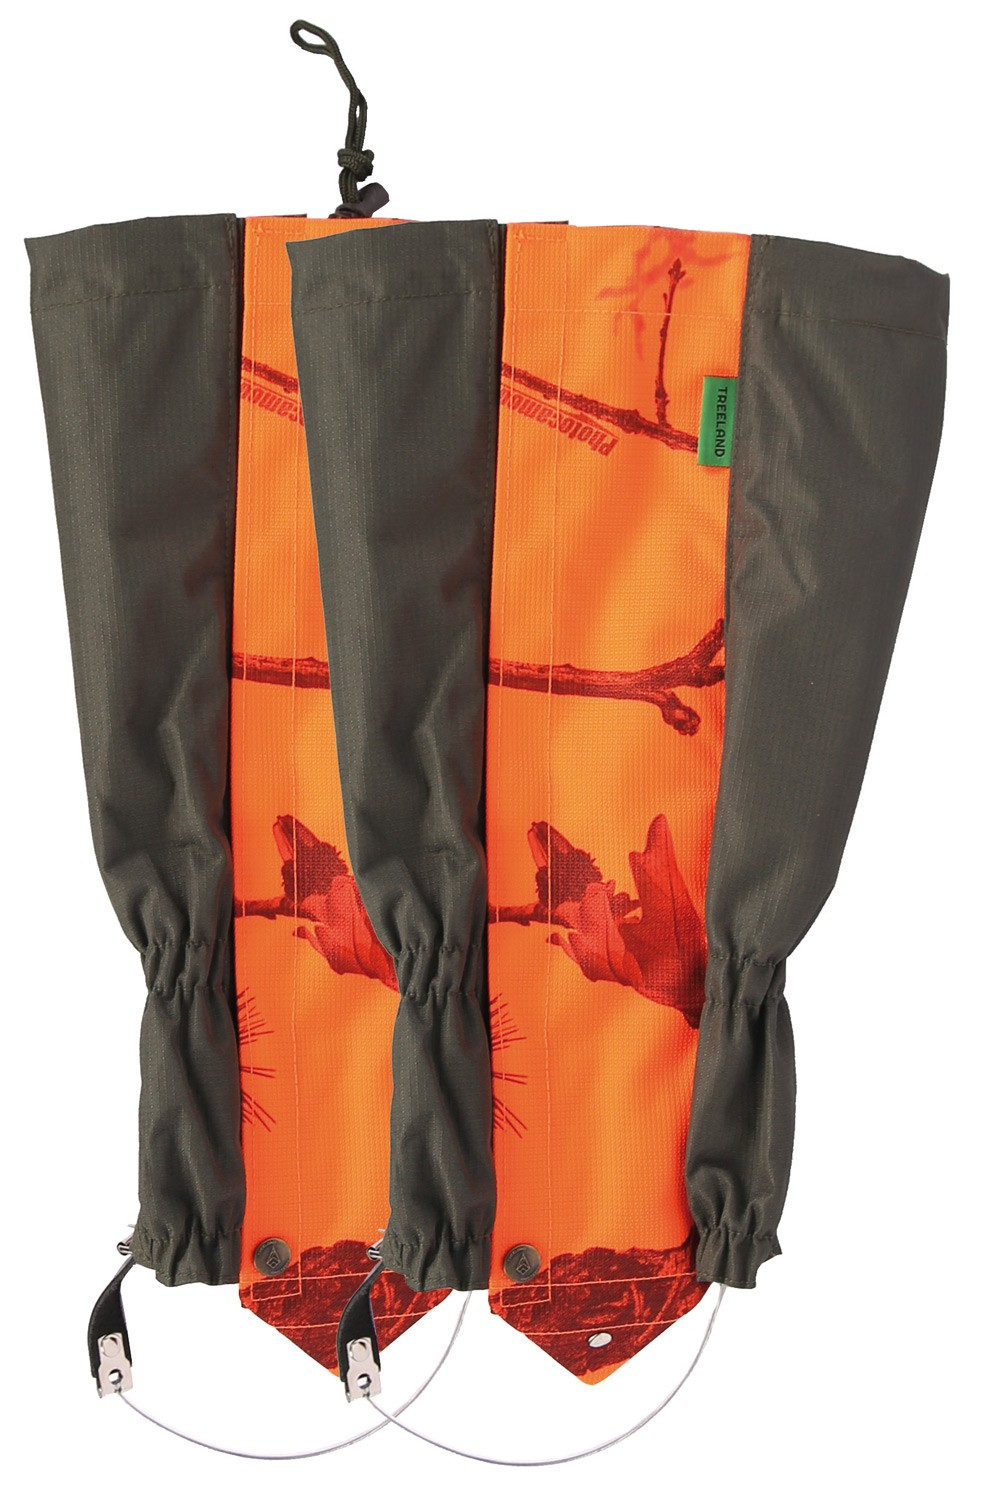 Guêtres de chasse treeland t755, made in chasse - equipem...